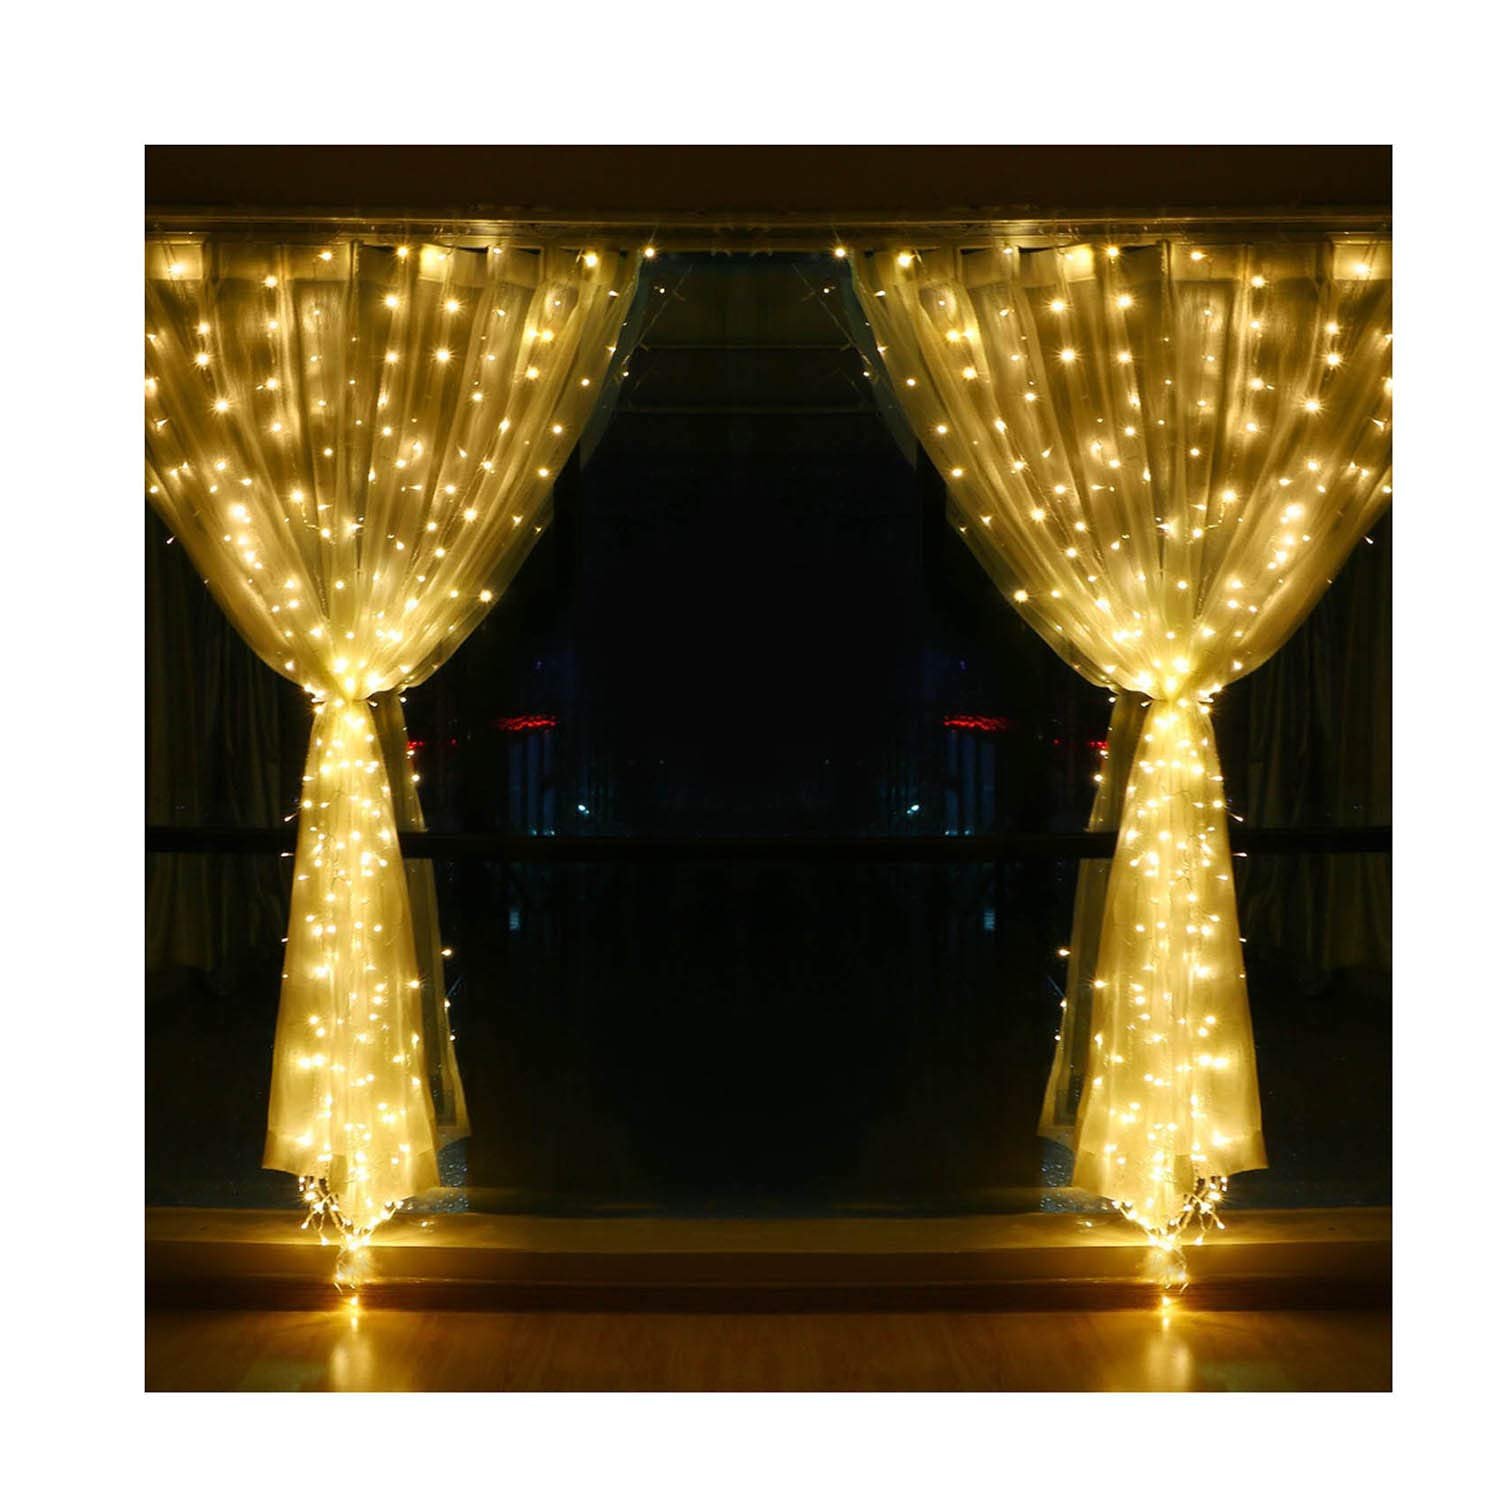 Window Curtain String Lights , 9.8 X 9.8ft Fairy Lights, 304 LED Waterproof Wall Decorations for Wedding Party Home Garden Bedroom Outdoor Indoor (Warm White)